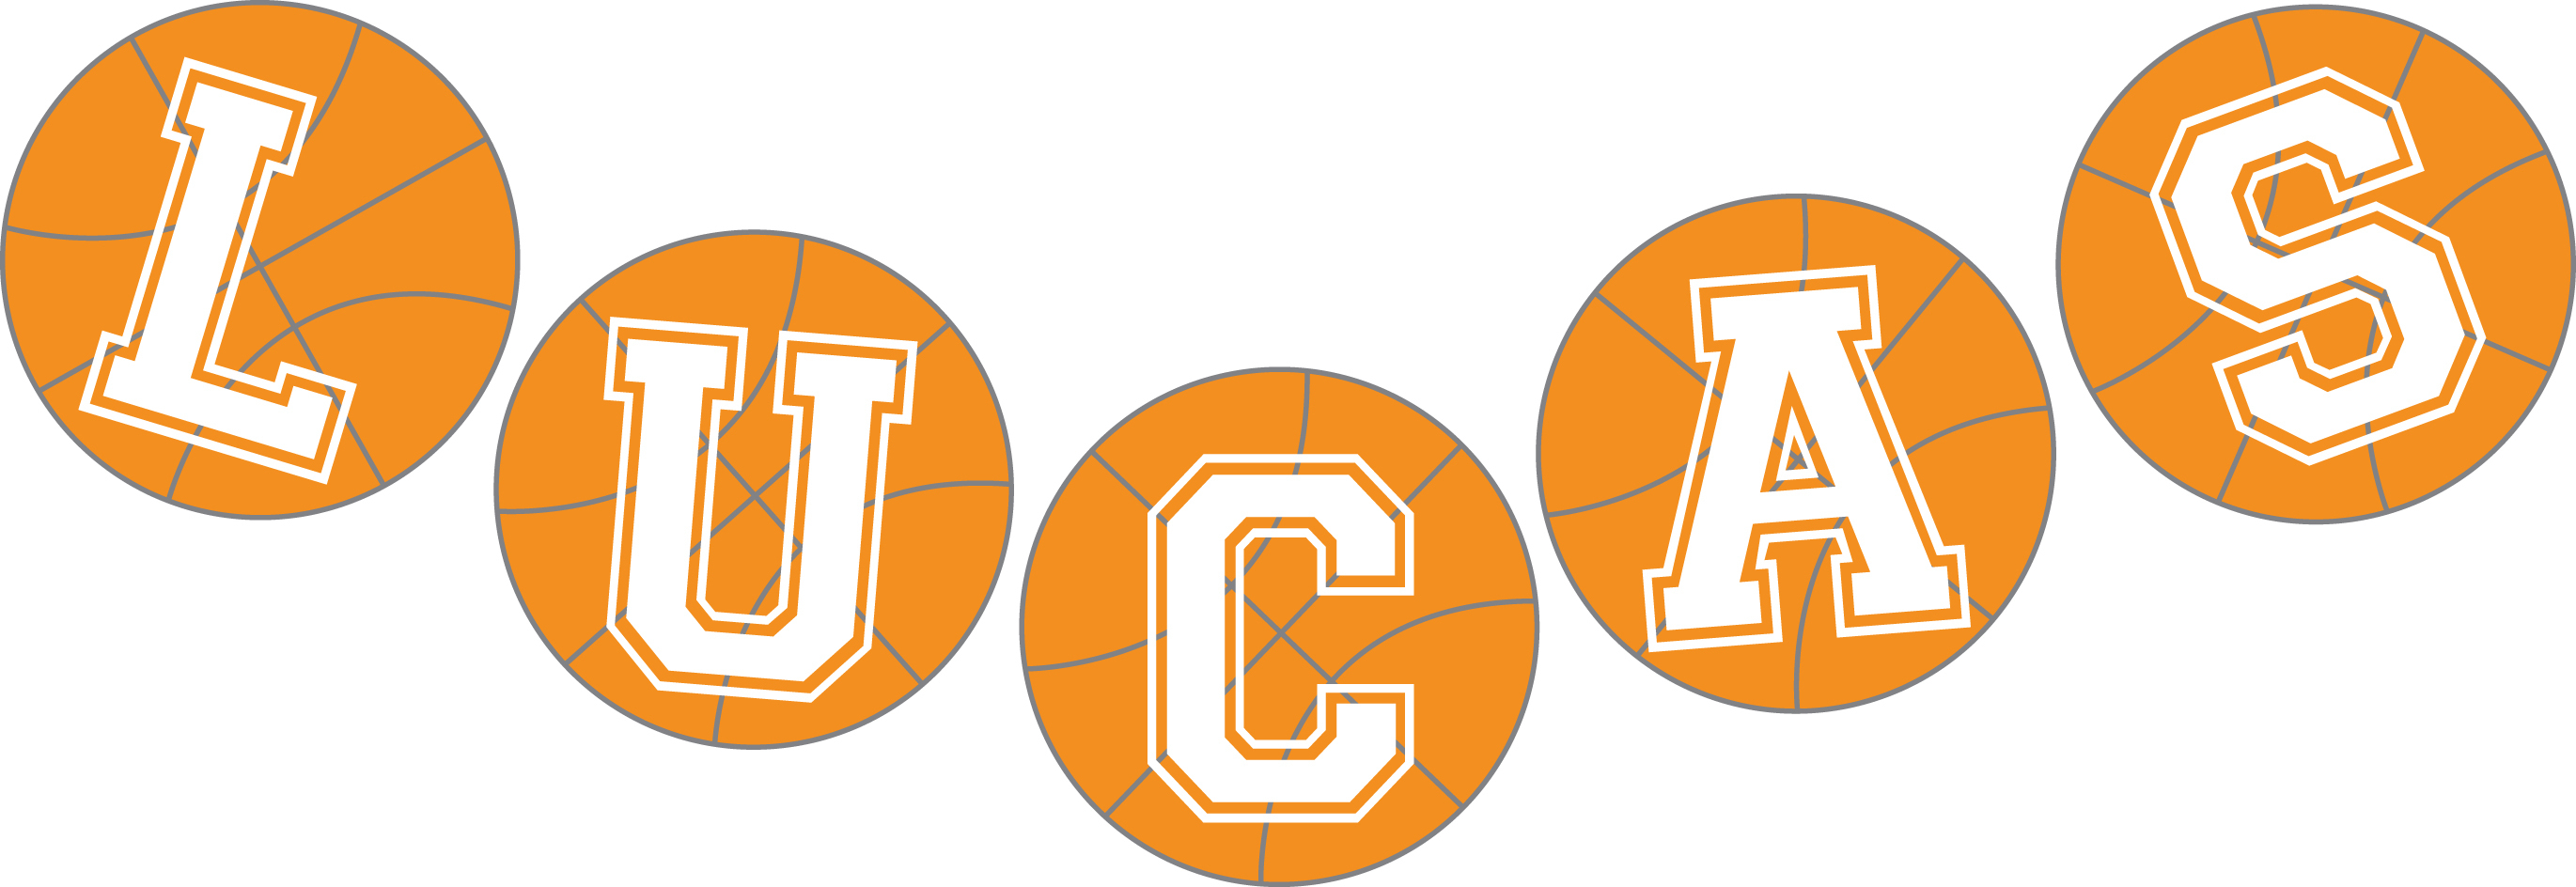 Free Printable Basketball Pictures, Download Free Clip Art, Free - Free Printable Basketball Court